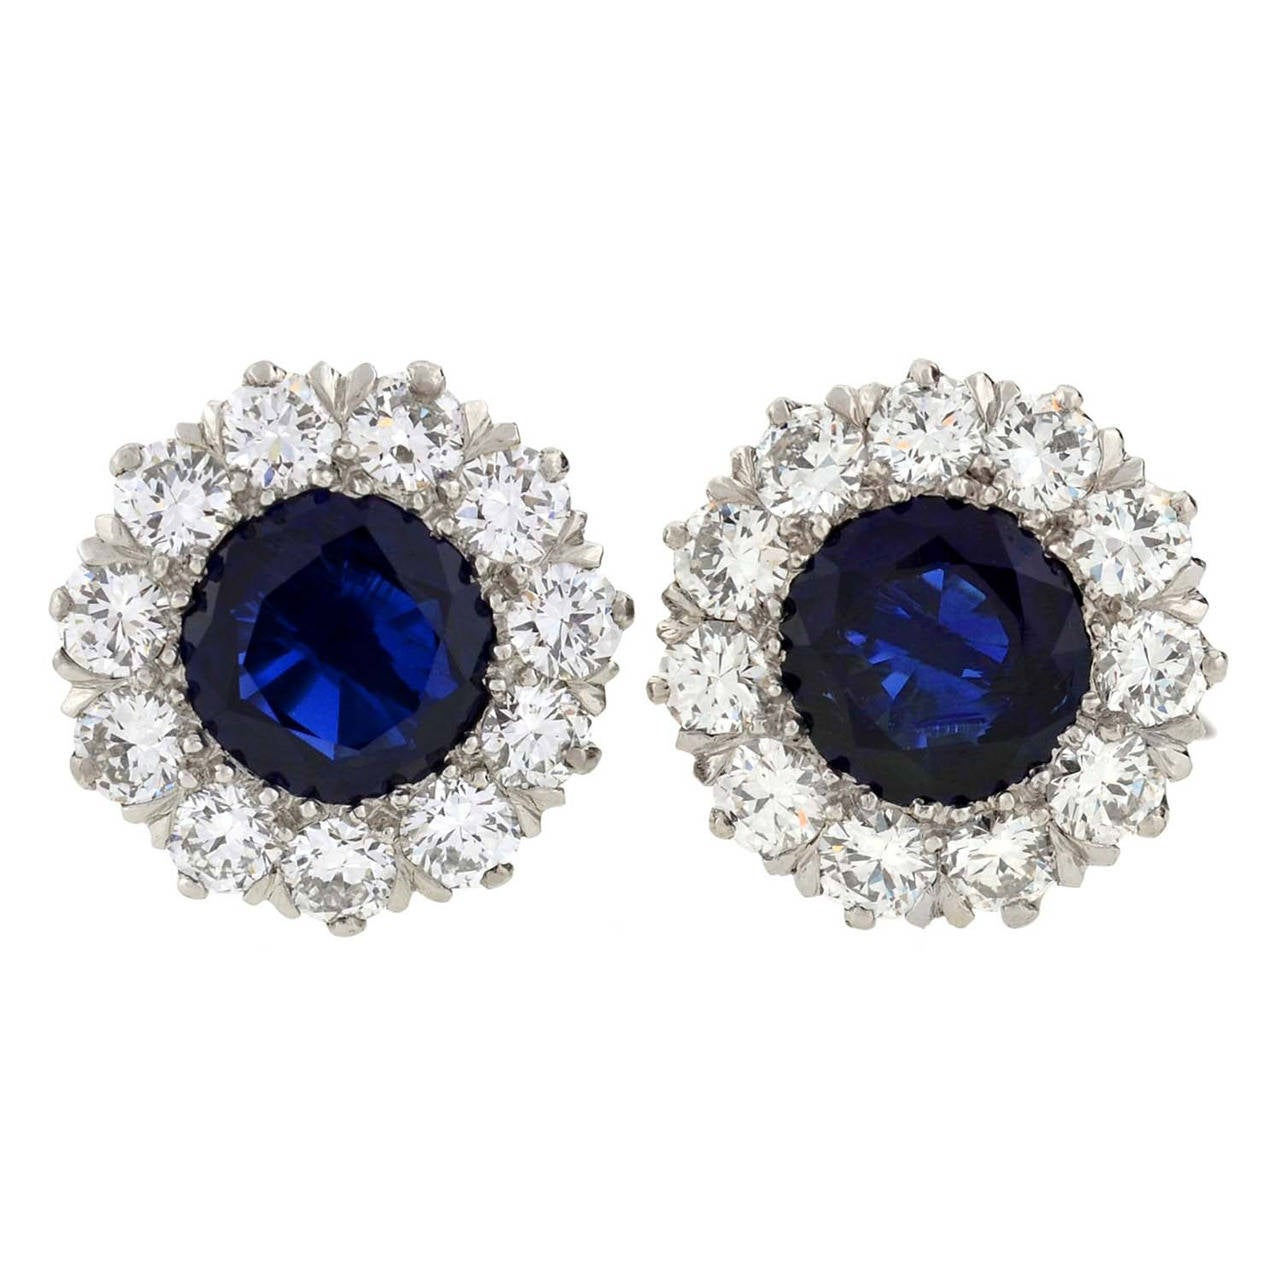 Tiffany & Co. Art Deco Burma Sapphire Diamond Platinum Earrings For Sale